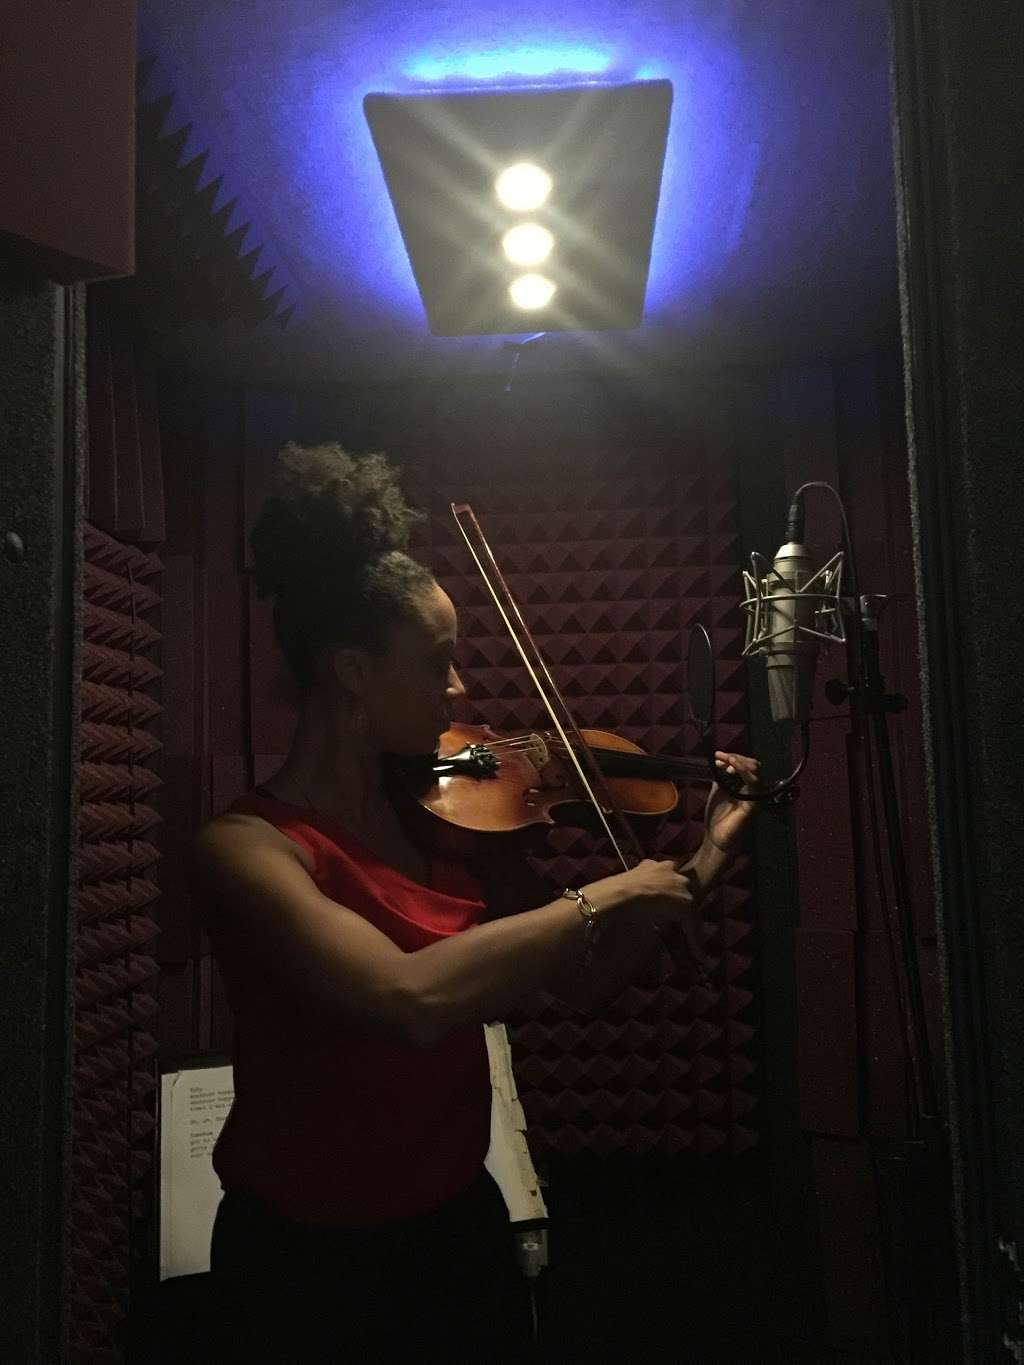 Recording Studio/Vocal Coaching - Fadedjean Productions - electronics store  | Photo 6 of 6 | Address: 1119 64th St, Brooklyn, NY 11219, USA | Phone: (347) 384-7562